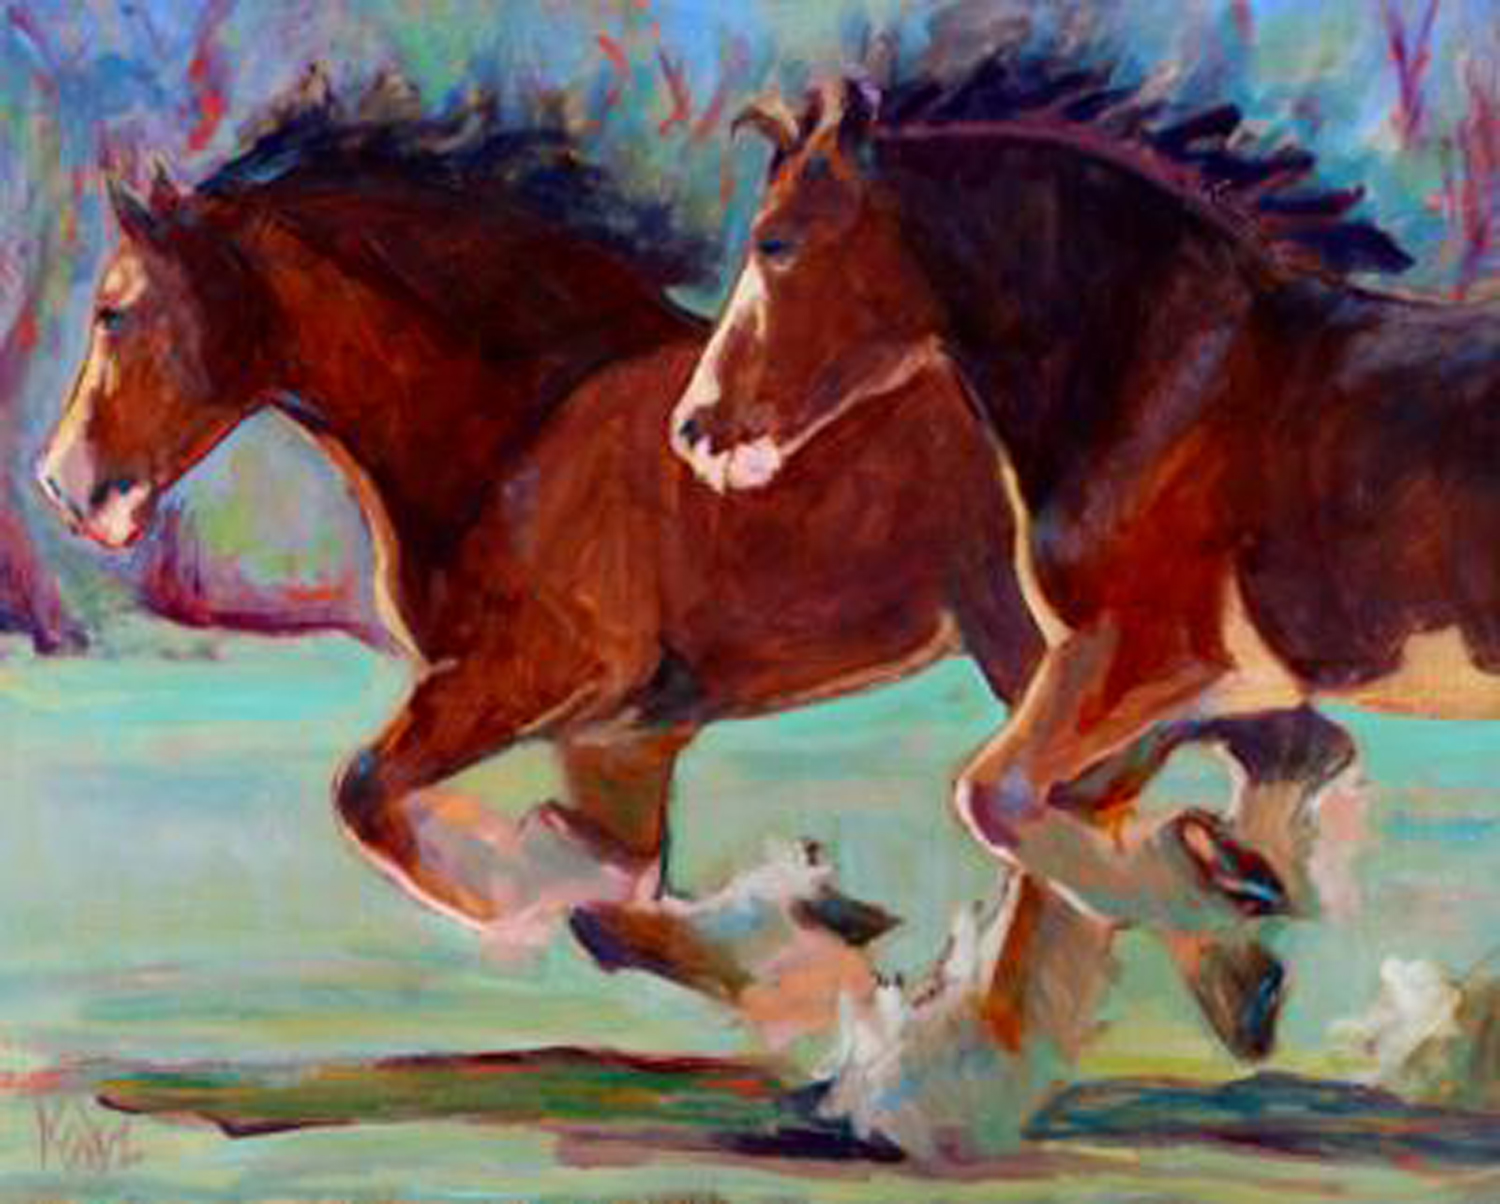 Katz Horse Play 16x20 Oil on Wood 650